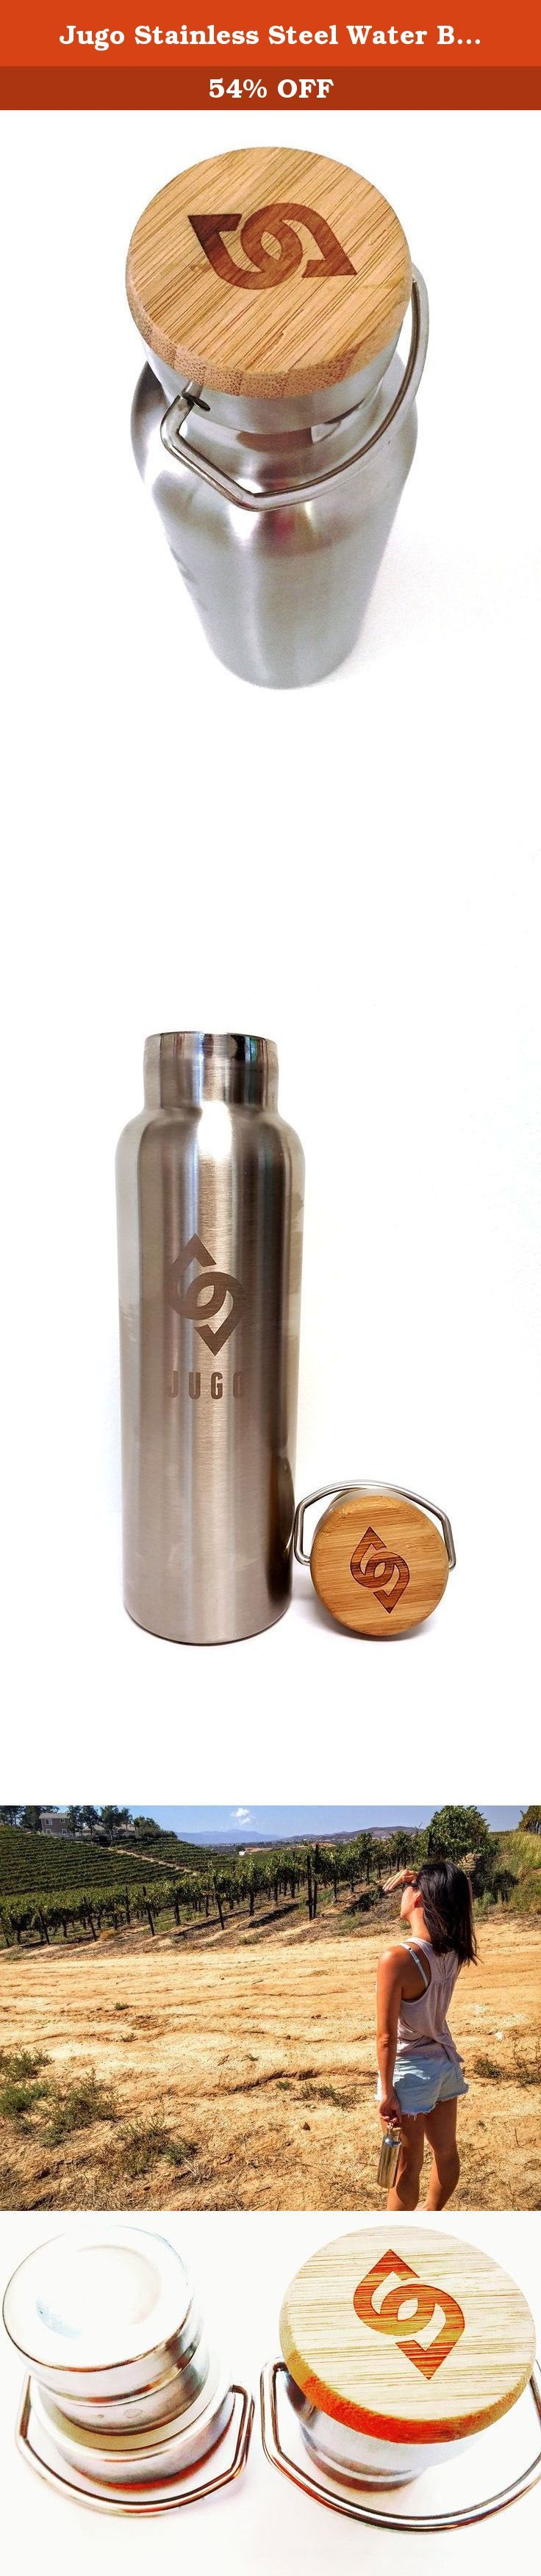 Jugo Stainless Steel Water Bottle - Double Wall Vacuum Insulated - (Mirrored Finish). Jugo's double wall stainless steel water bottles are made of 100% high quality food grade stainless steel. The bottles have no liner (like most aluminum bottles) and are 100% BPA and phthalates free. All Jugo bottles are reusable, sustainable and environmentally friendly. Unlike plastic water bottles or conventional stainless bottles, Jugo's unique vacuum insulated bottle and threaded stainless steel…